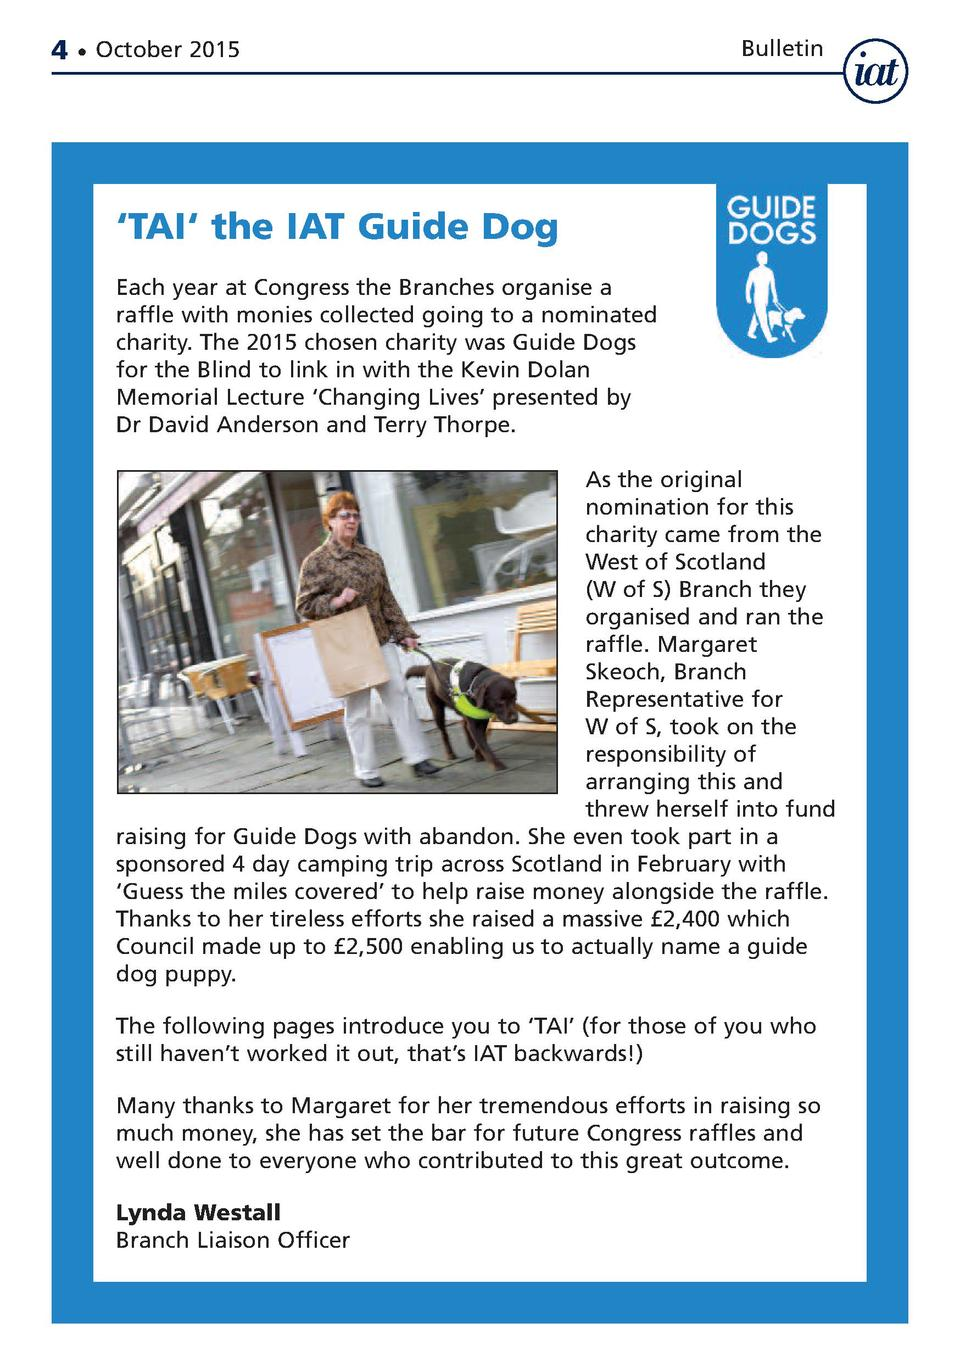 4     October 2015  Bulletin     TAI    the IAT Guide Dog Each year at Congress the Branches organise a raffle with monies...